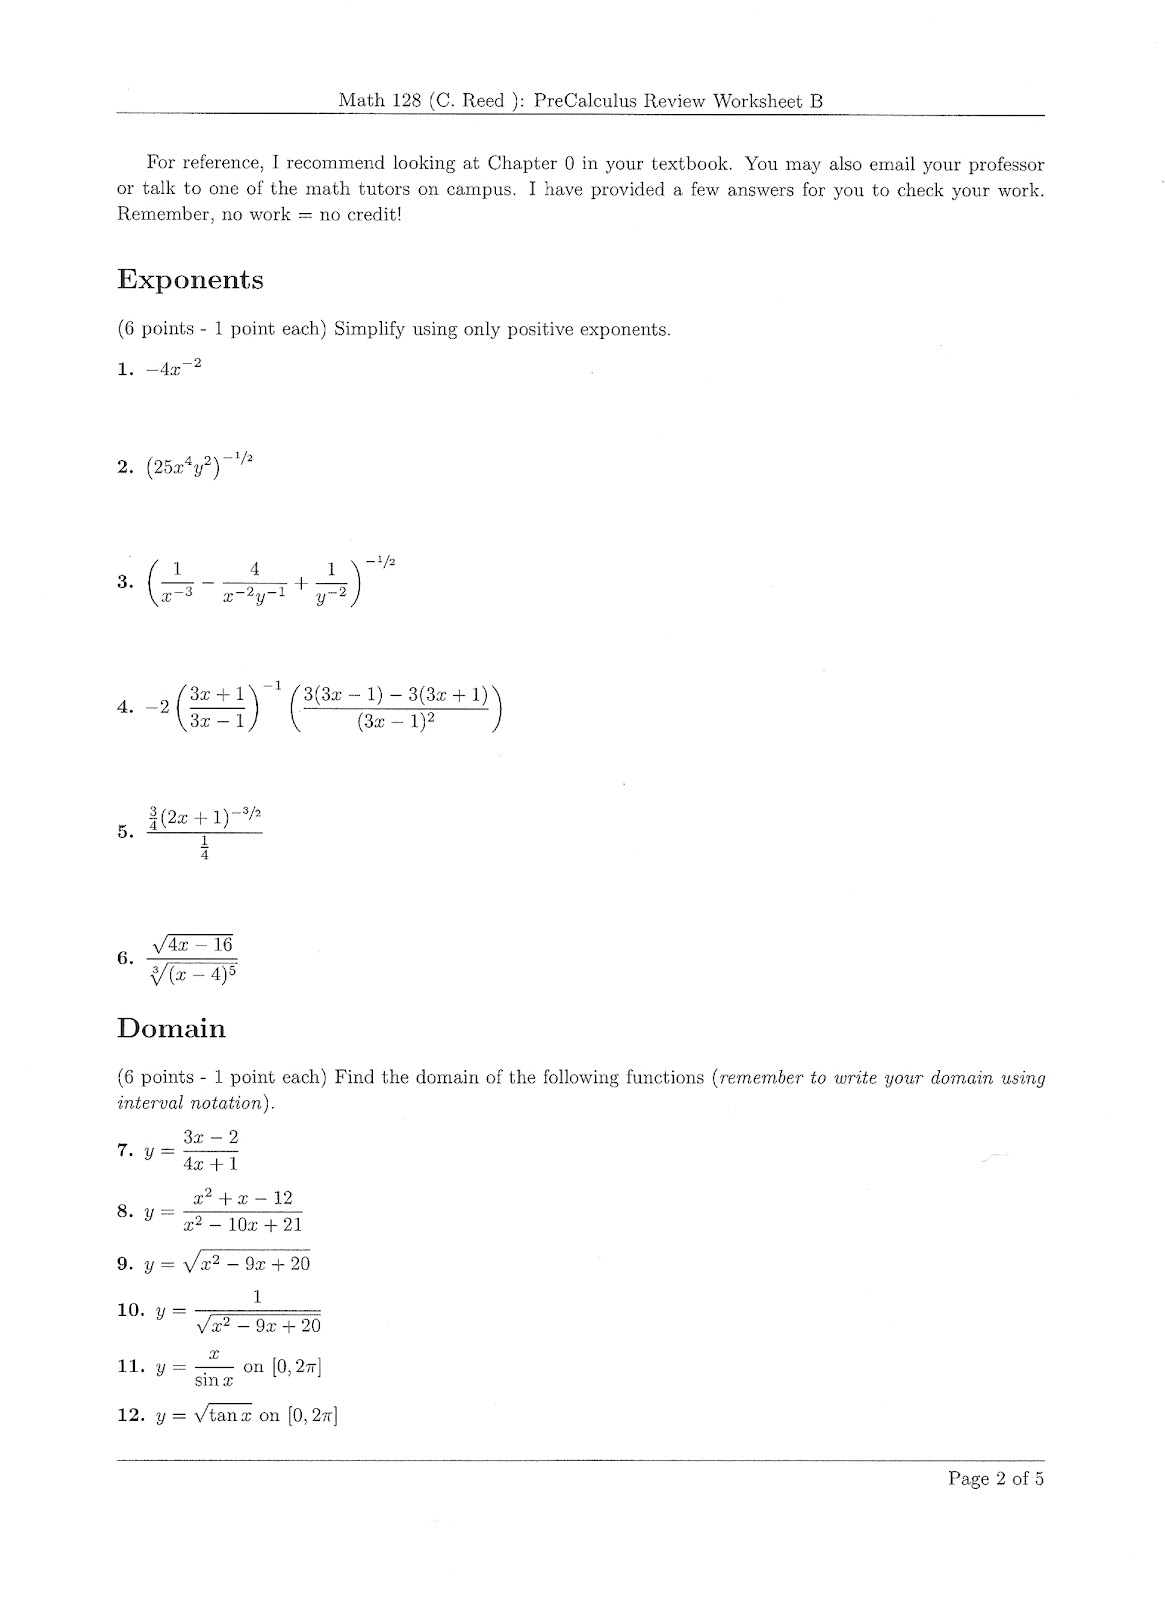 Printables Pre Calc Worksheets first day plan calculus i after the introductory lesson limits usually handed students a precalculus and algebra review worksheet heres one page of my worksheet